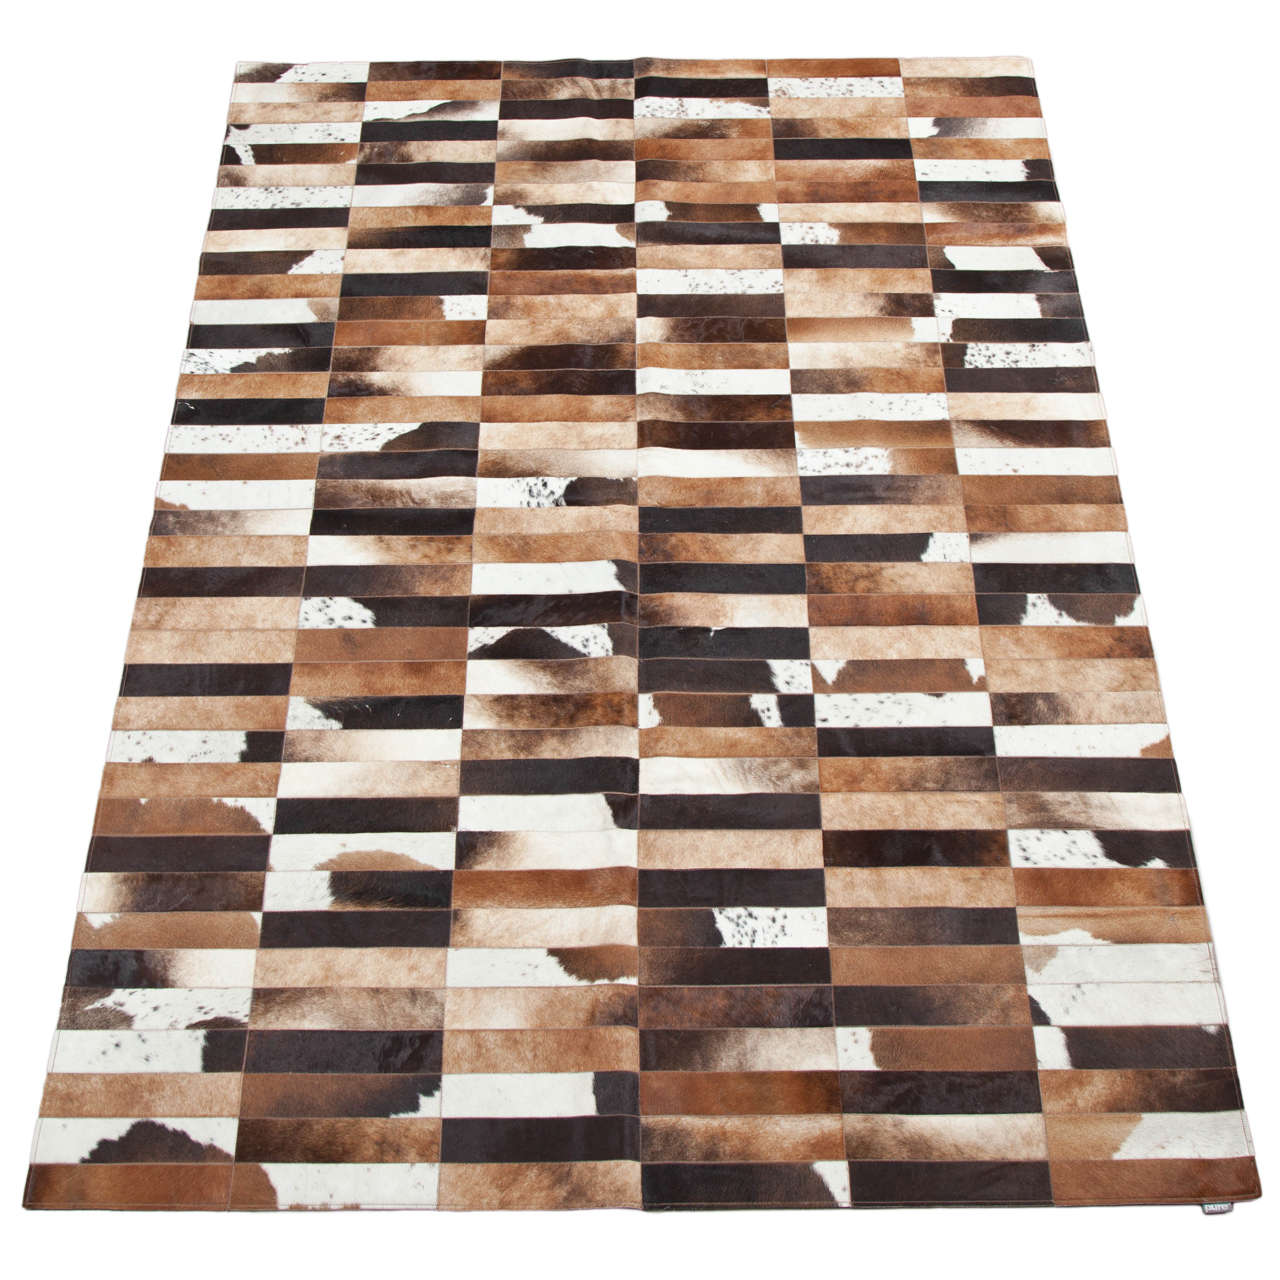 Black On Natural Intersection H 6 Hand Dyed Cowhide Rug By Avo